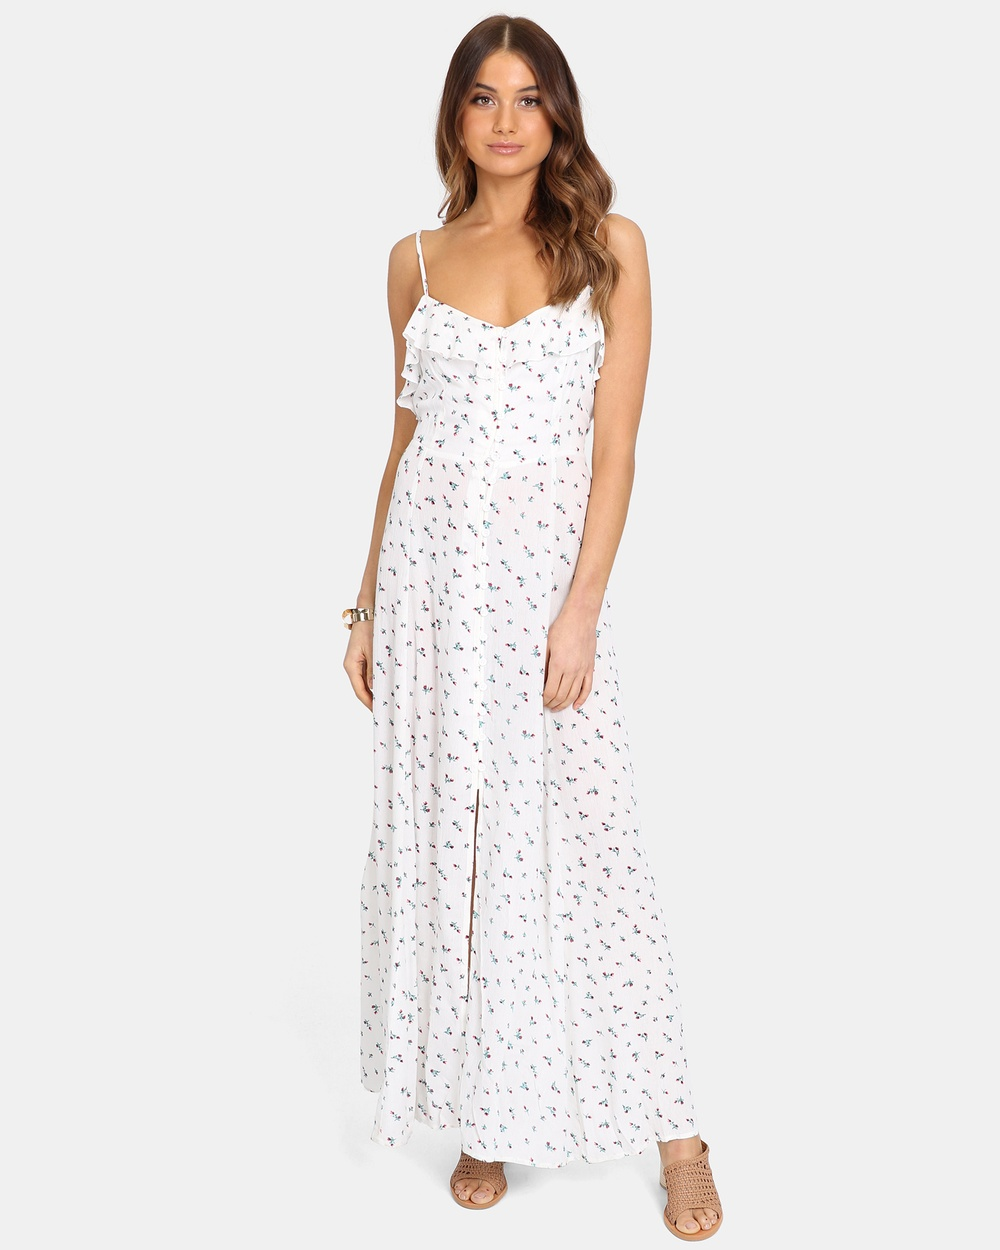 Lost in Lunar White Darci Maxi Dress